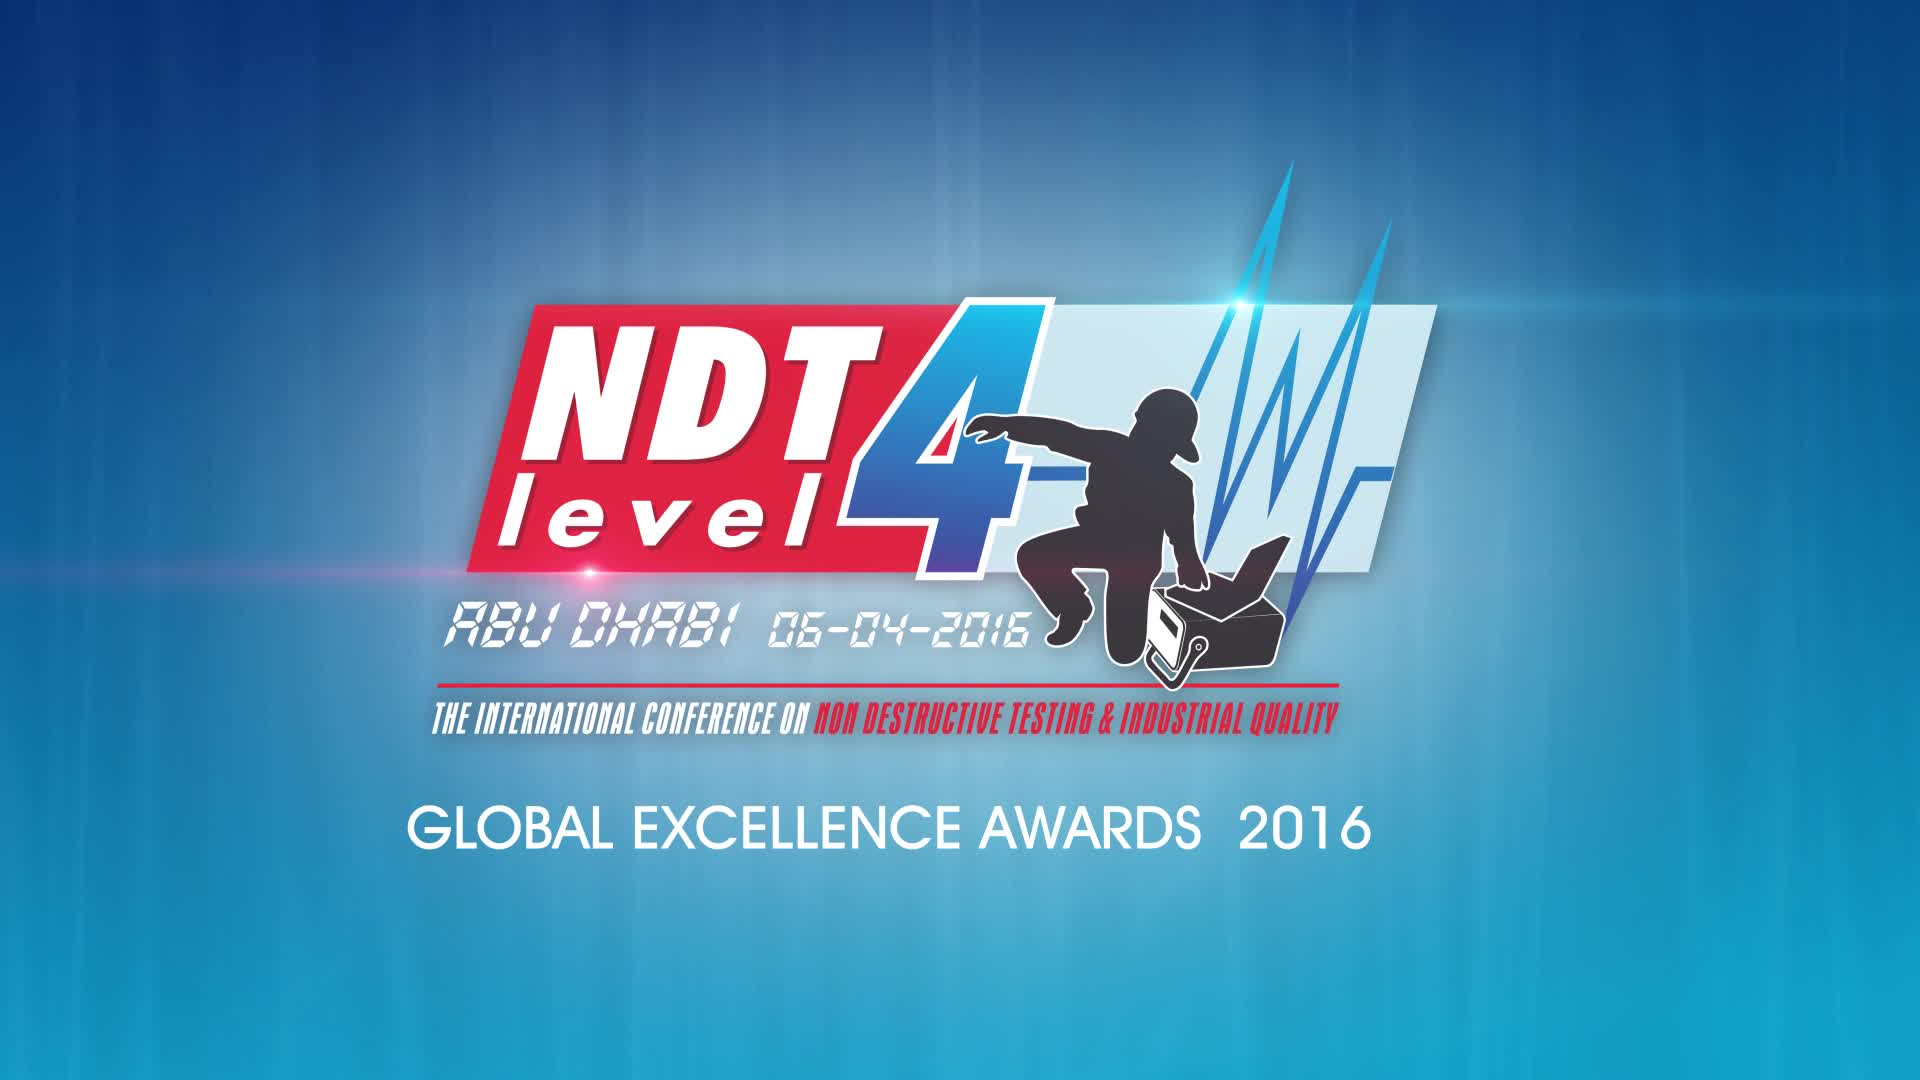 NDT Level 4 Conference 2016-Part-01